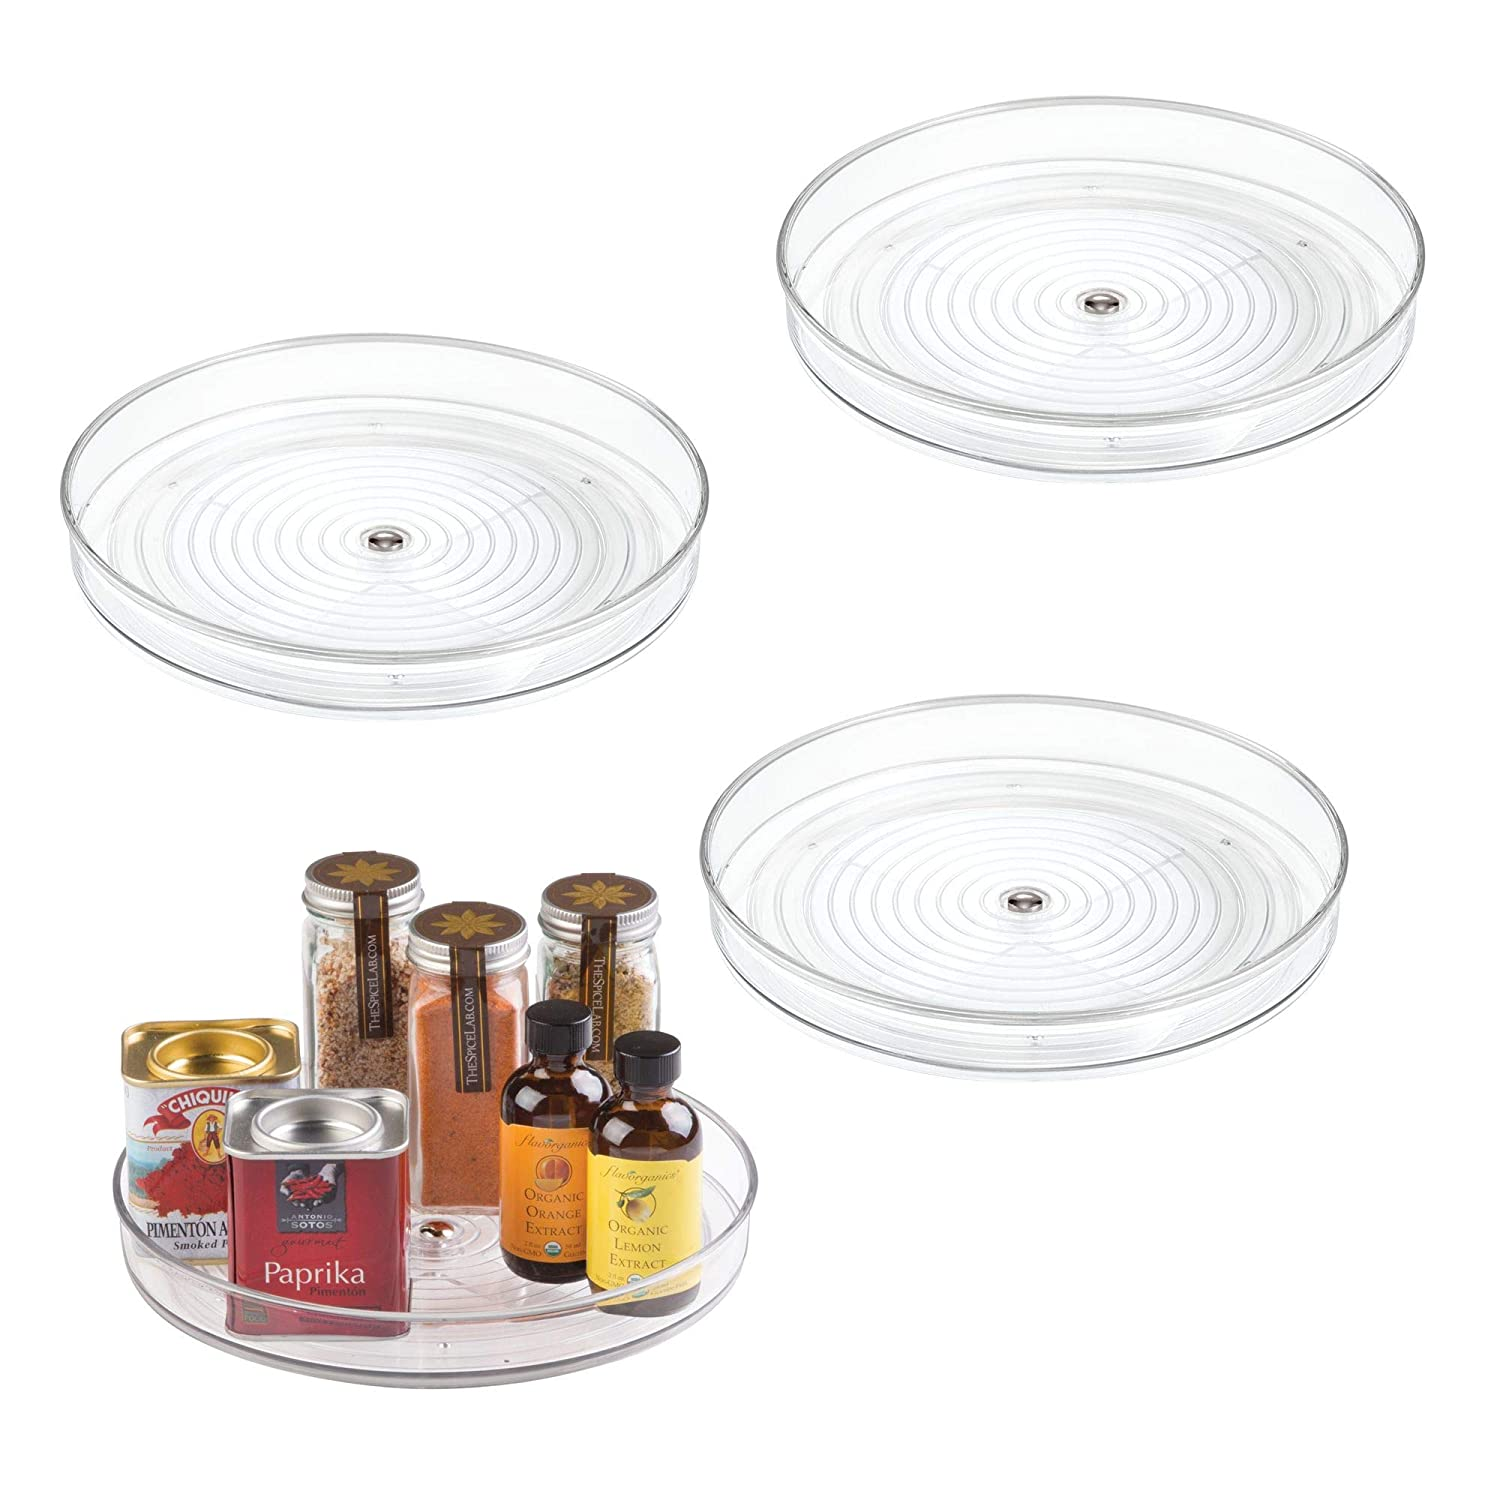 "mDesign Lazy Susan Turntable Food Storage Container for Cabinets, Pantry, Refrigerator, Countertops, BPA Free - Spinning Organizer for Spices, Condiments, Baking Supplies - 9"" Round, Pack of 4, Clear MetroDecor"